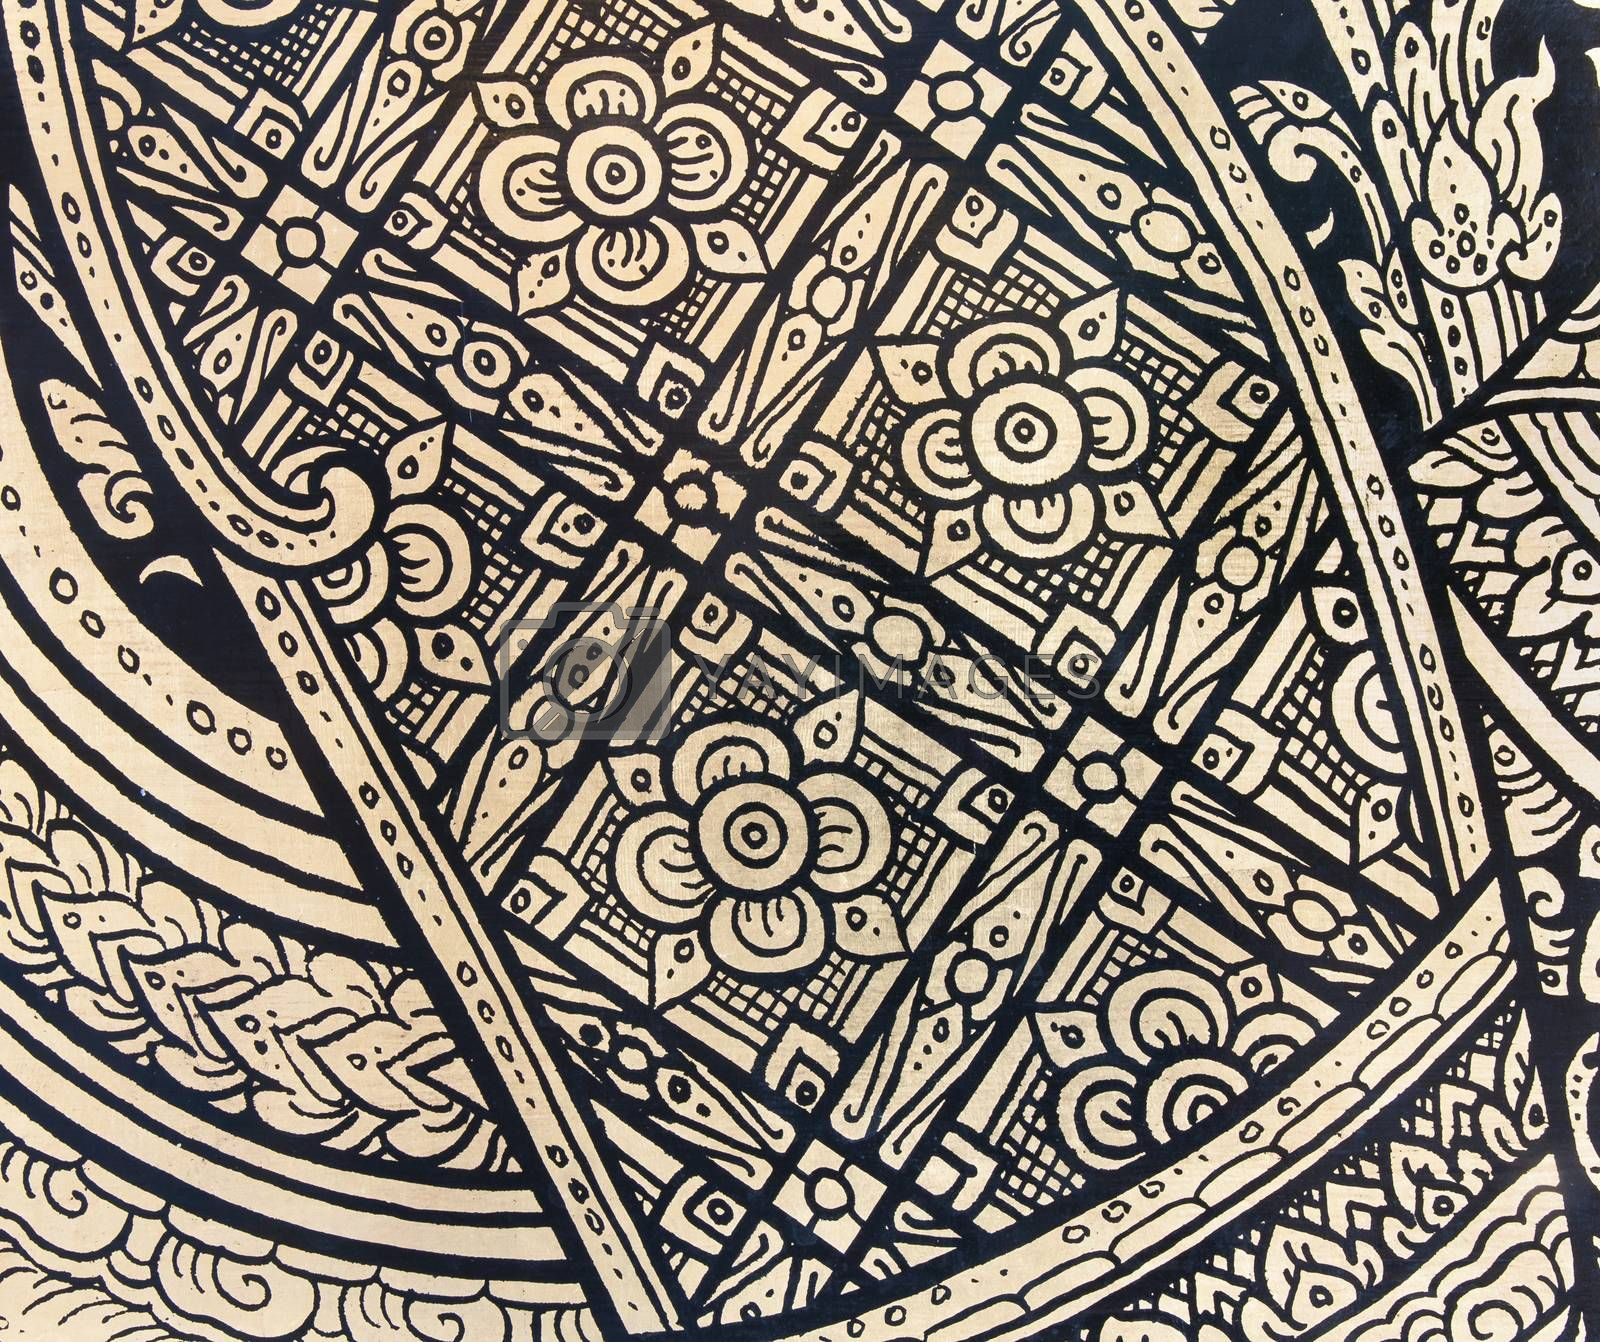 Royalty free image of pattern in traditional Thai style art painting by Sorapop